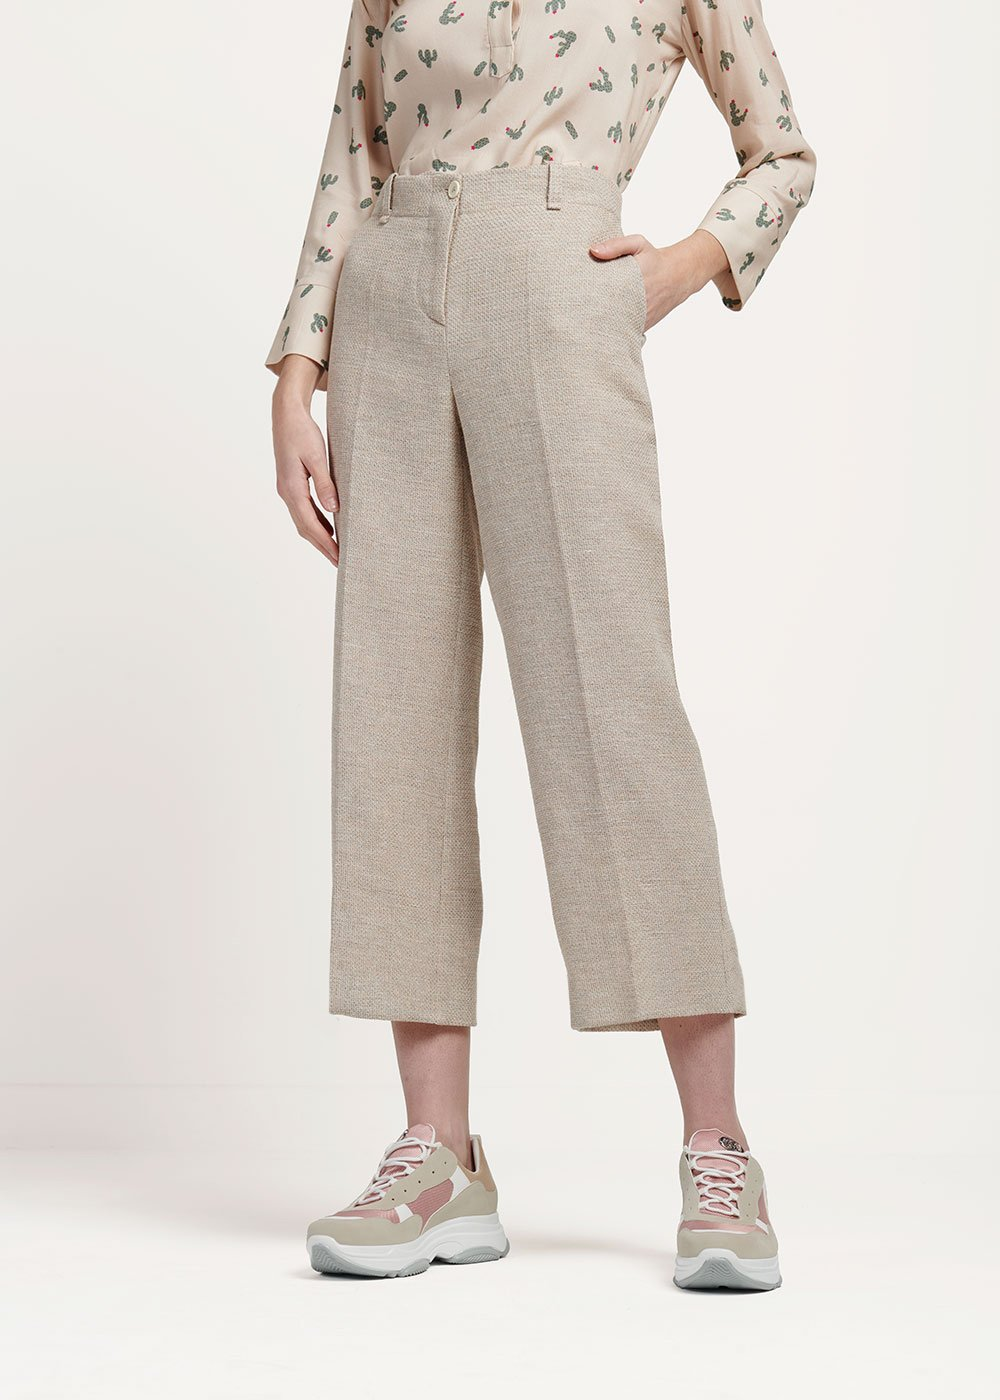 Sara trousers with rush matting-effect bustier - Light Beige - Woman